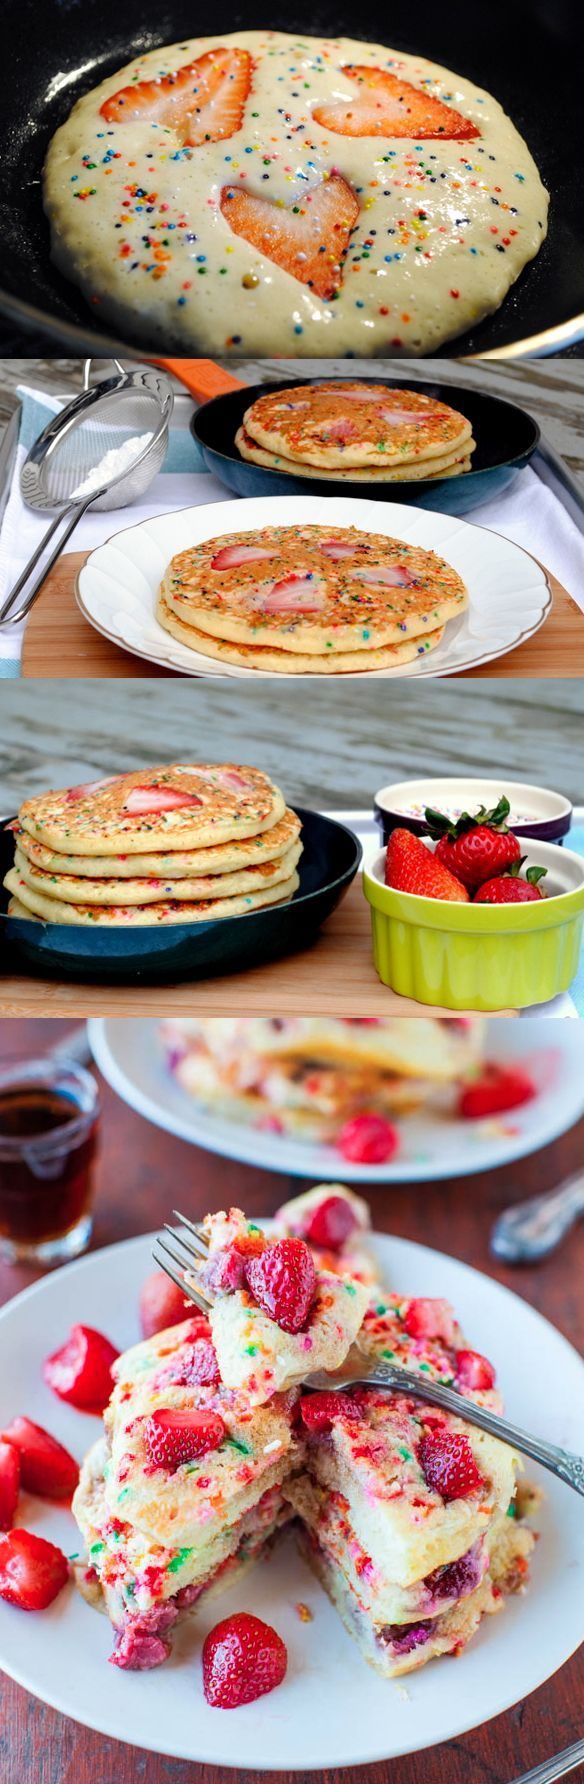 Strawberry sprinkles funfetti pancakes breakfast